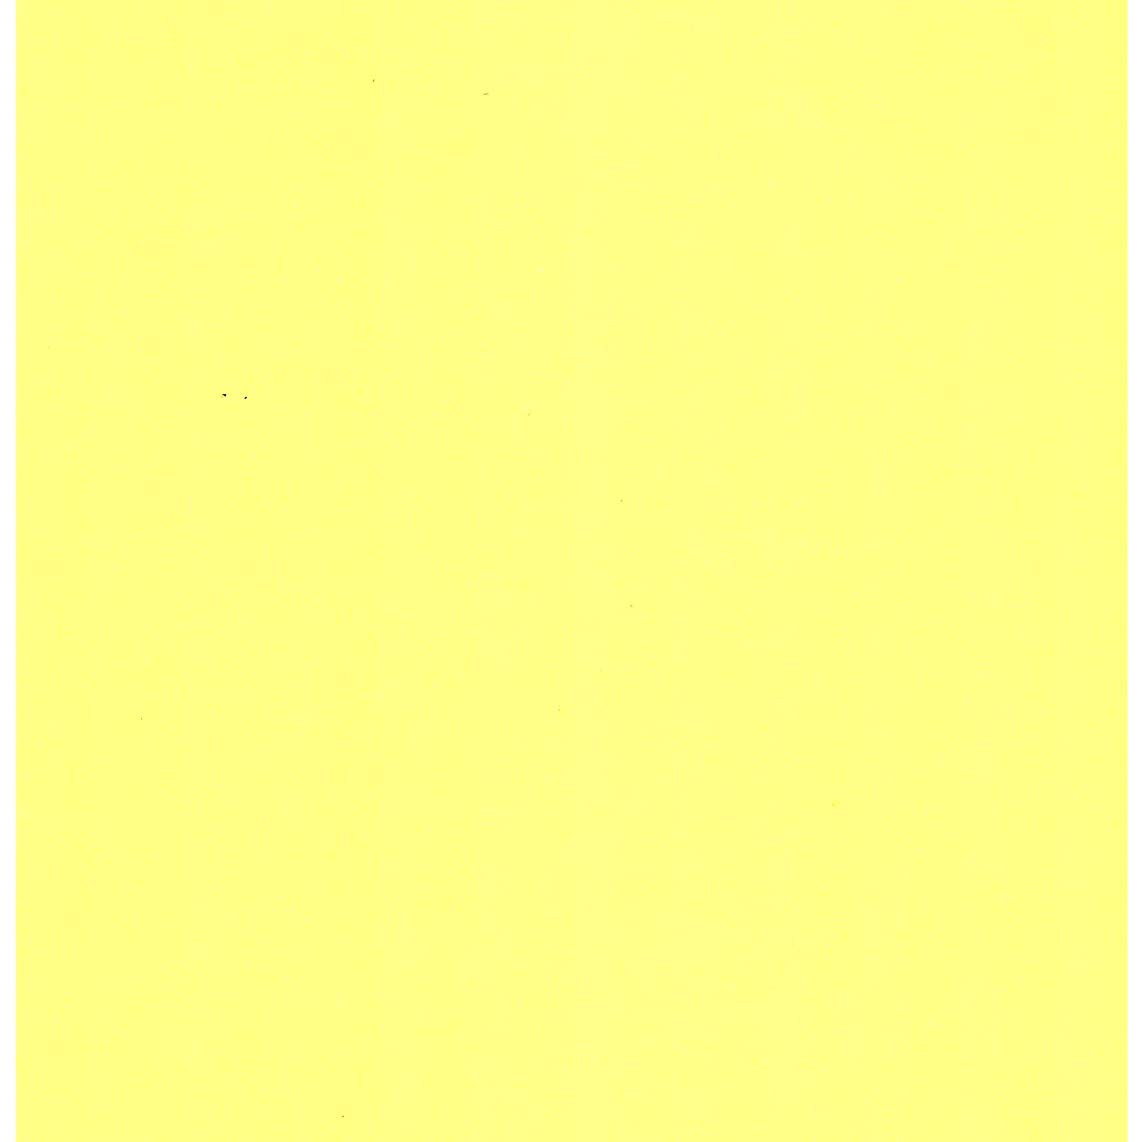 12x12 Brite Yellow Cardstock 65# 20 Sheets, Card Stock, Scrapbooking, arts, crafts, stamping